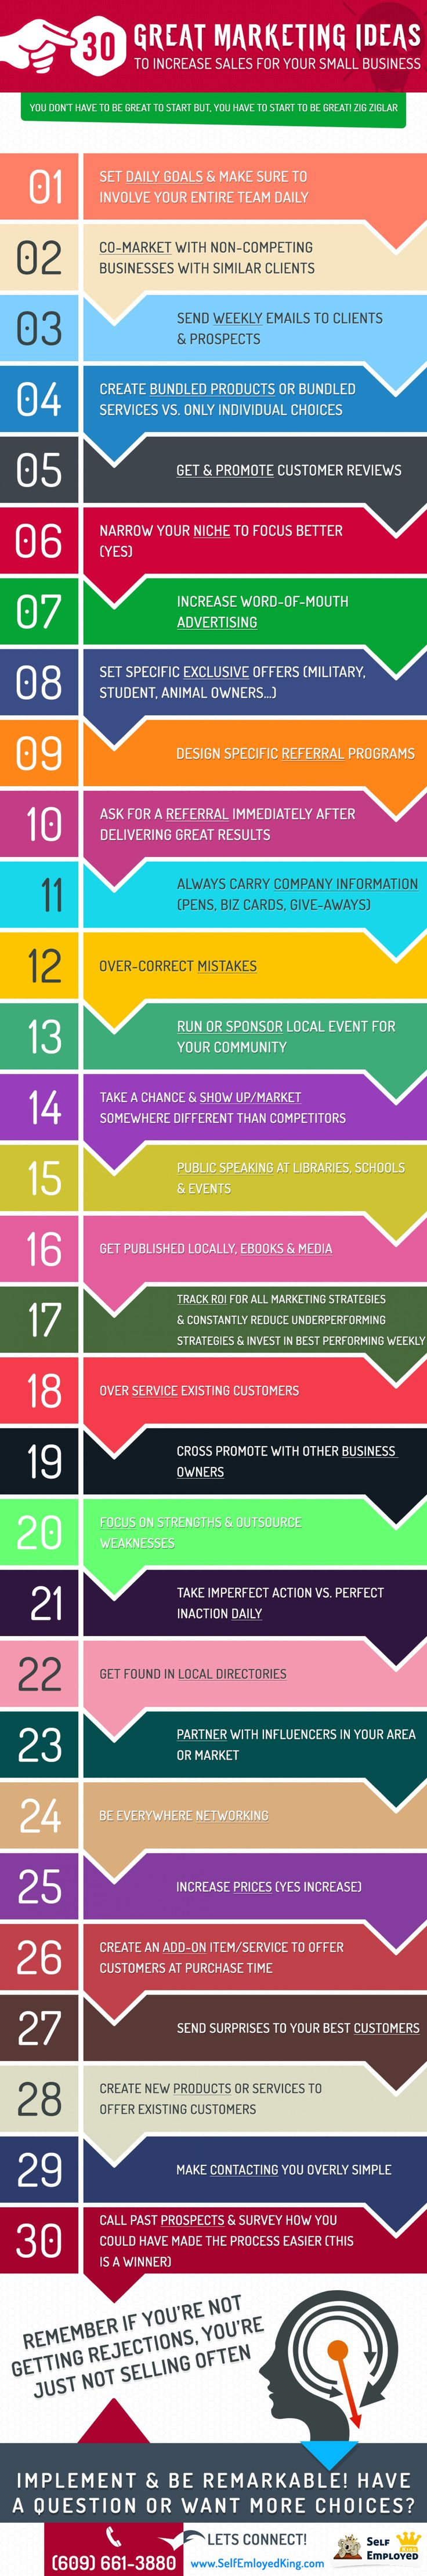 30 Great Marketing Ideas for Small Business Owners Infographic